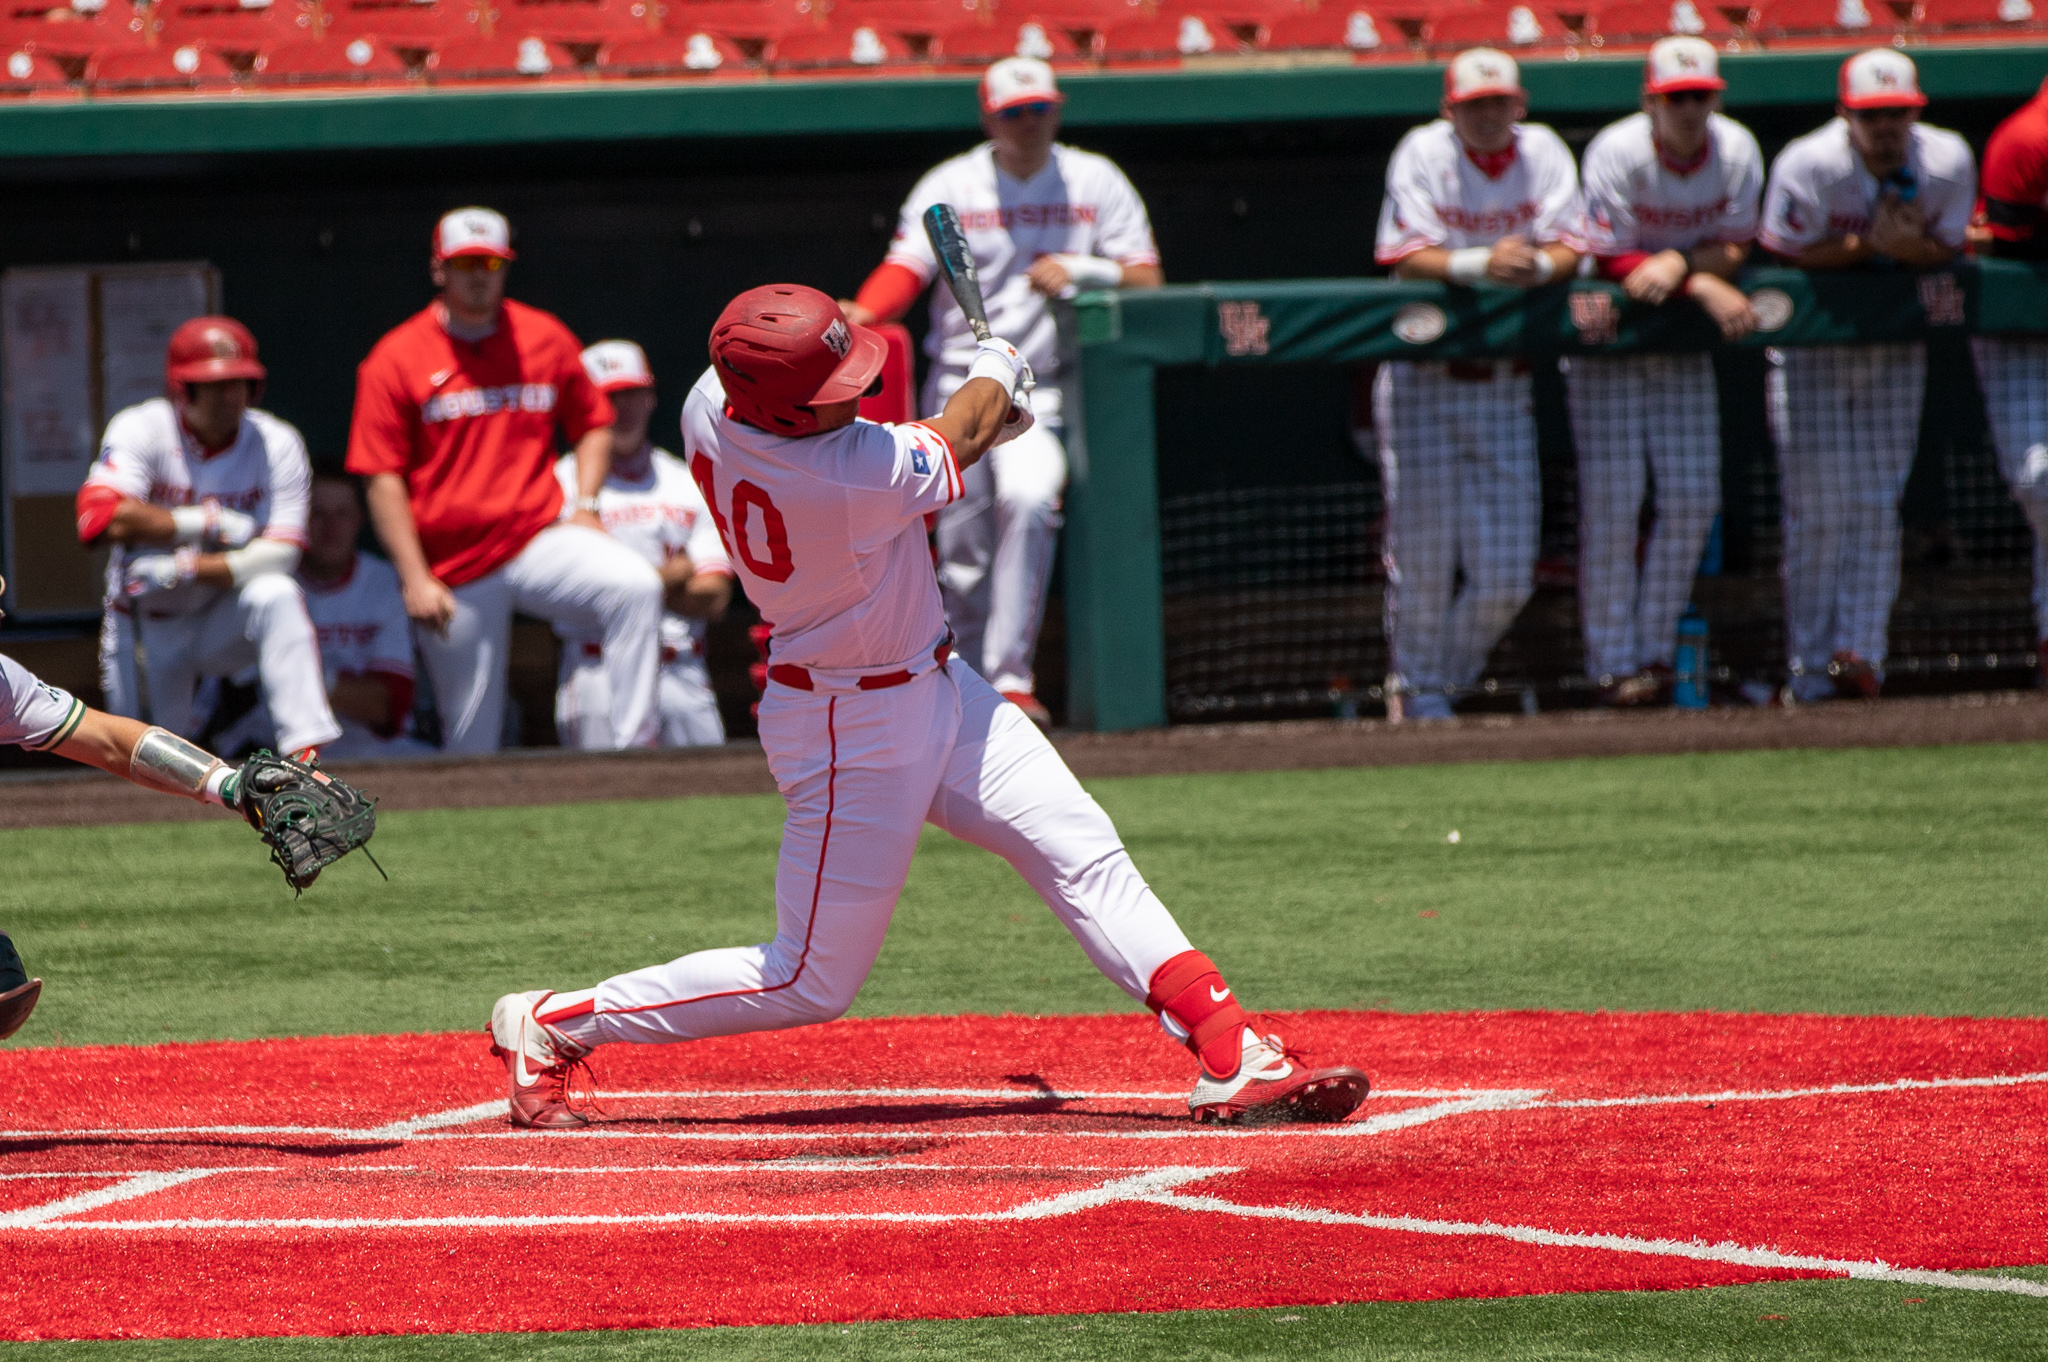 Junior first baseman Ryan Hernandez launched his eighth home run of the season in UH baseball's 6-5 victory over Cincinnati on Saturday. | Andy Yanez/The Cougar